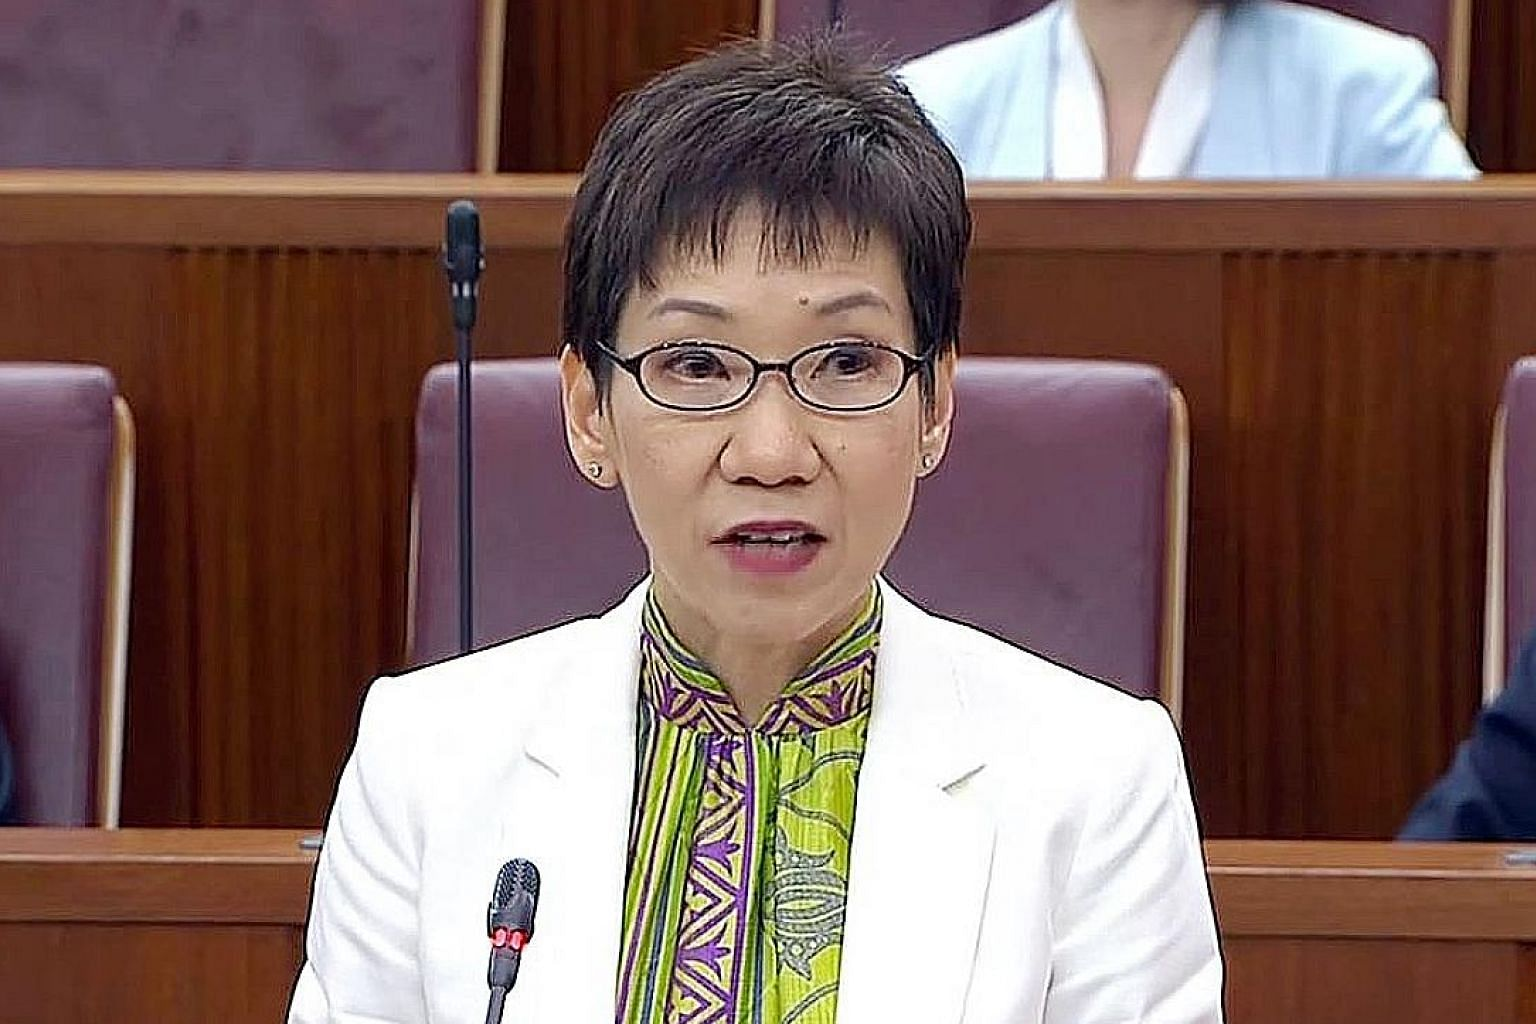 Ms Grace Fu, Minister for Culture, Community and Youth, noted that a strong cohesive society starts with tolerance.